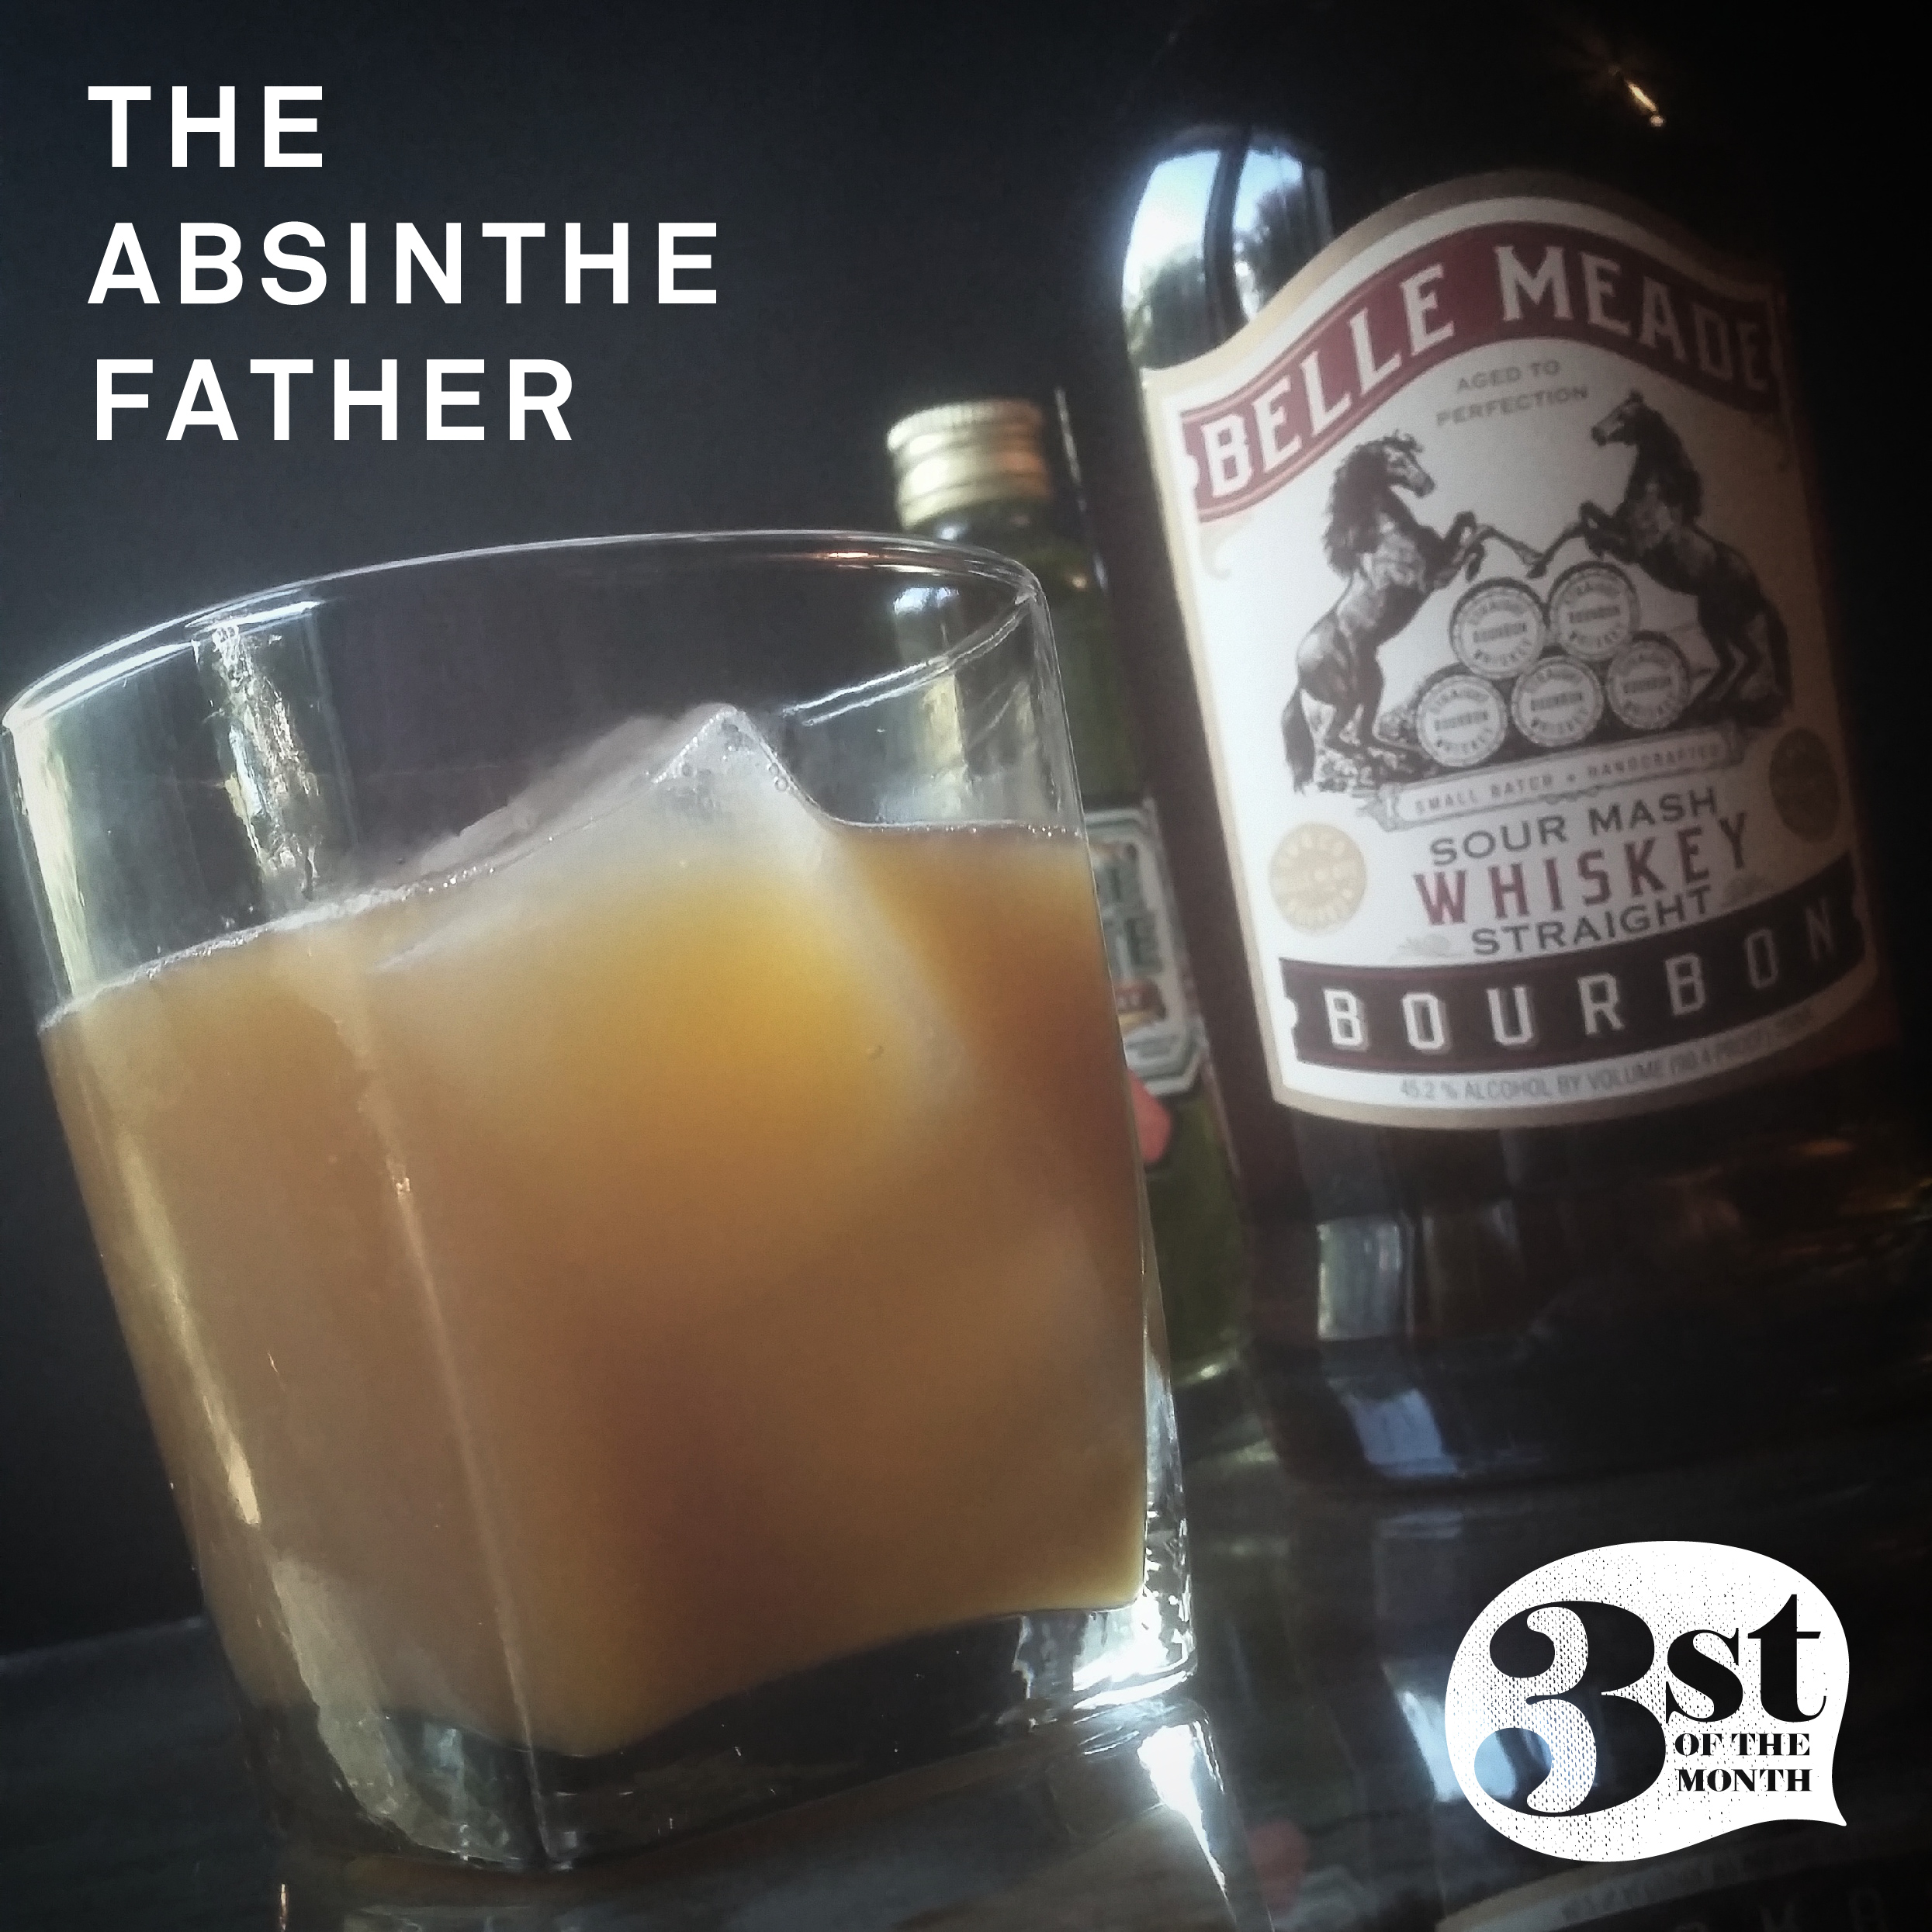 The Absinthe Father Cocktail from 3st of the Month